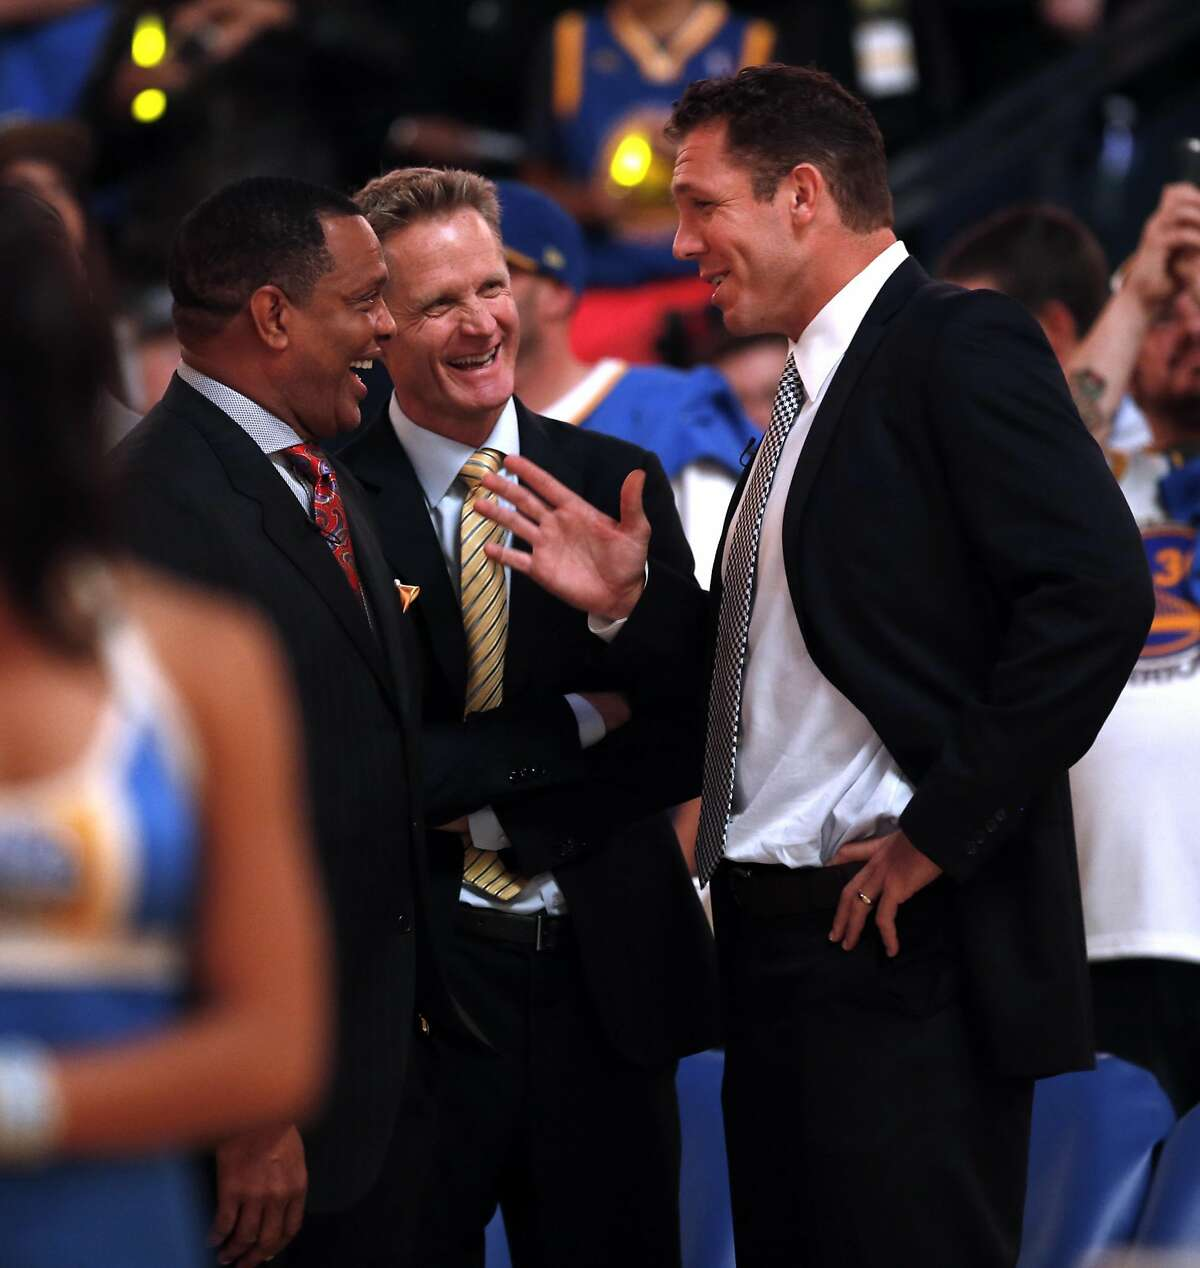 Golden State Warriors' interim coach Luke Walton with head coach Steve Kerr and New Orleans Pelicans' head coach Alvin Gentry before NBA game at Oracle Arena in Oakland, Calif., on Tuesday, October 27, 2015.